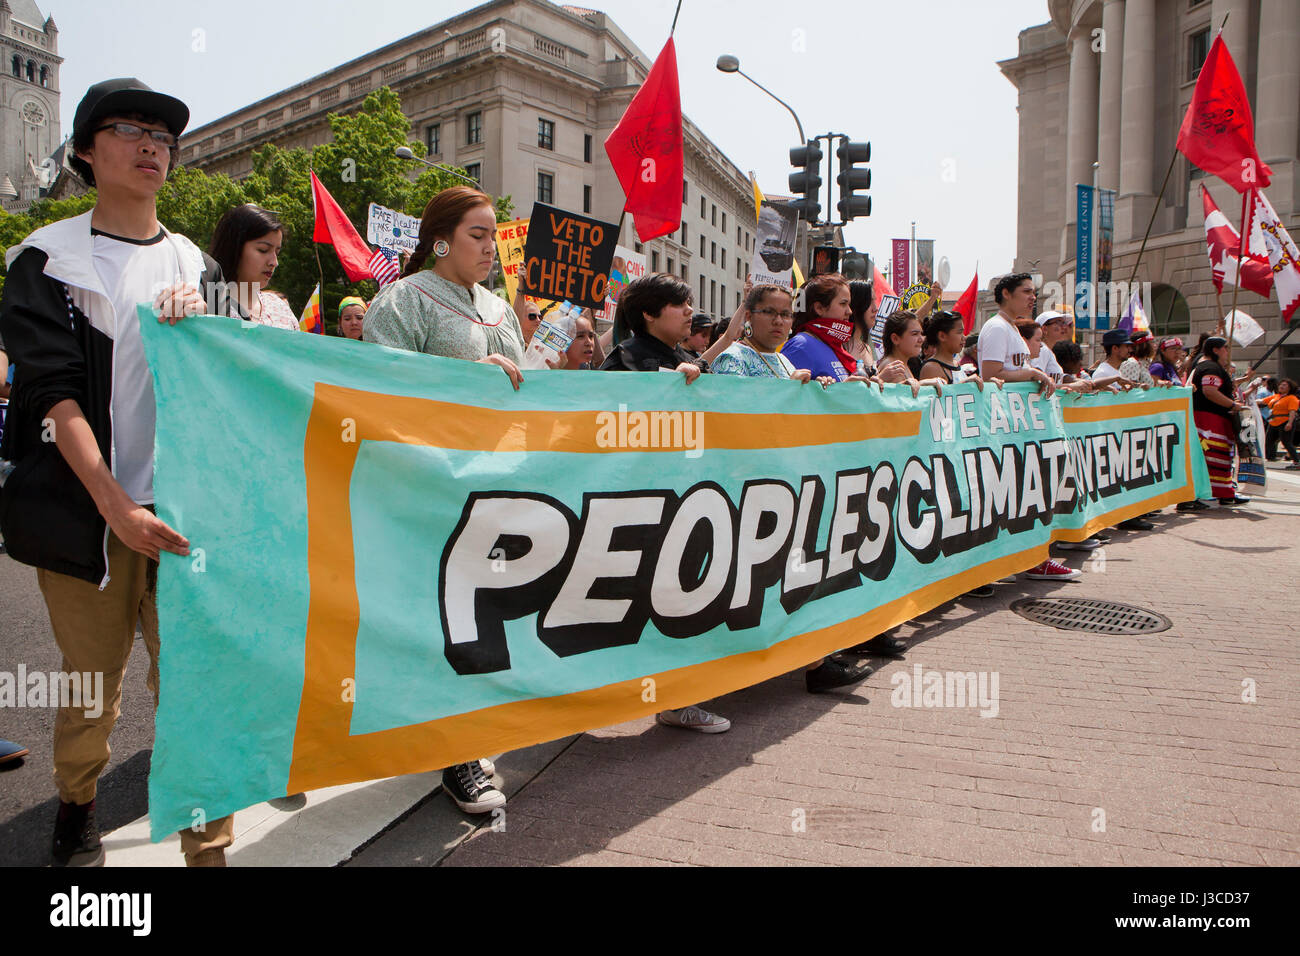 2017 People's Climate March (protesters marching with Peoples Climate Movement banner) - Washington, DC USA - Stock Image